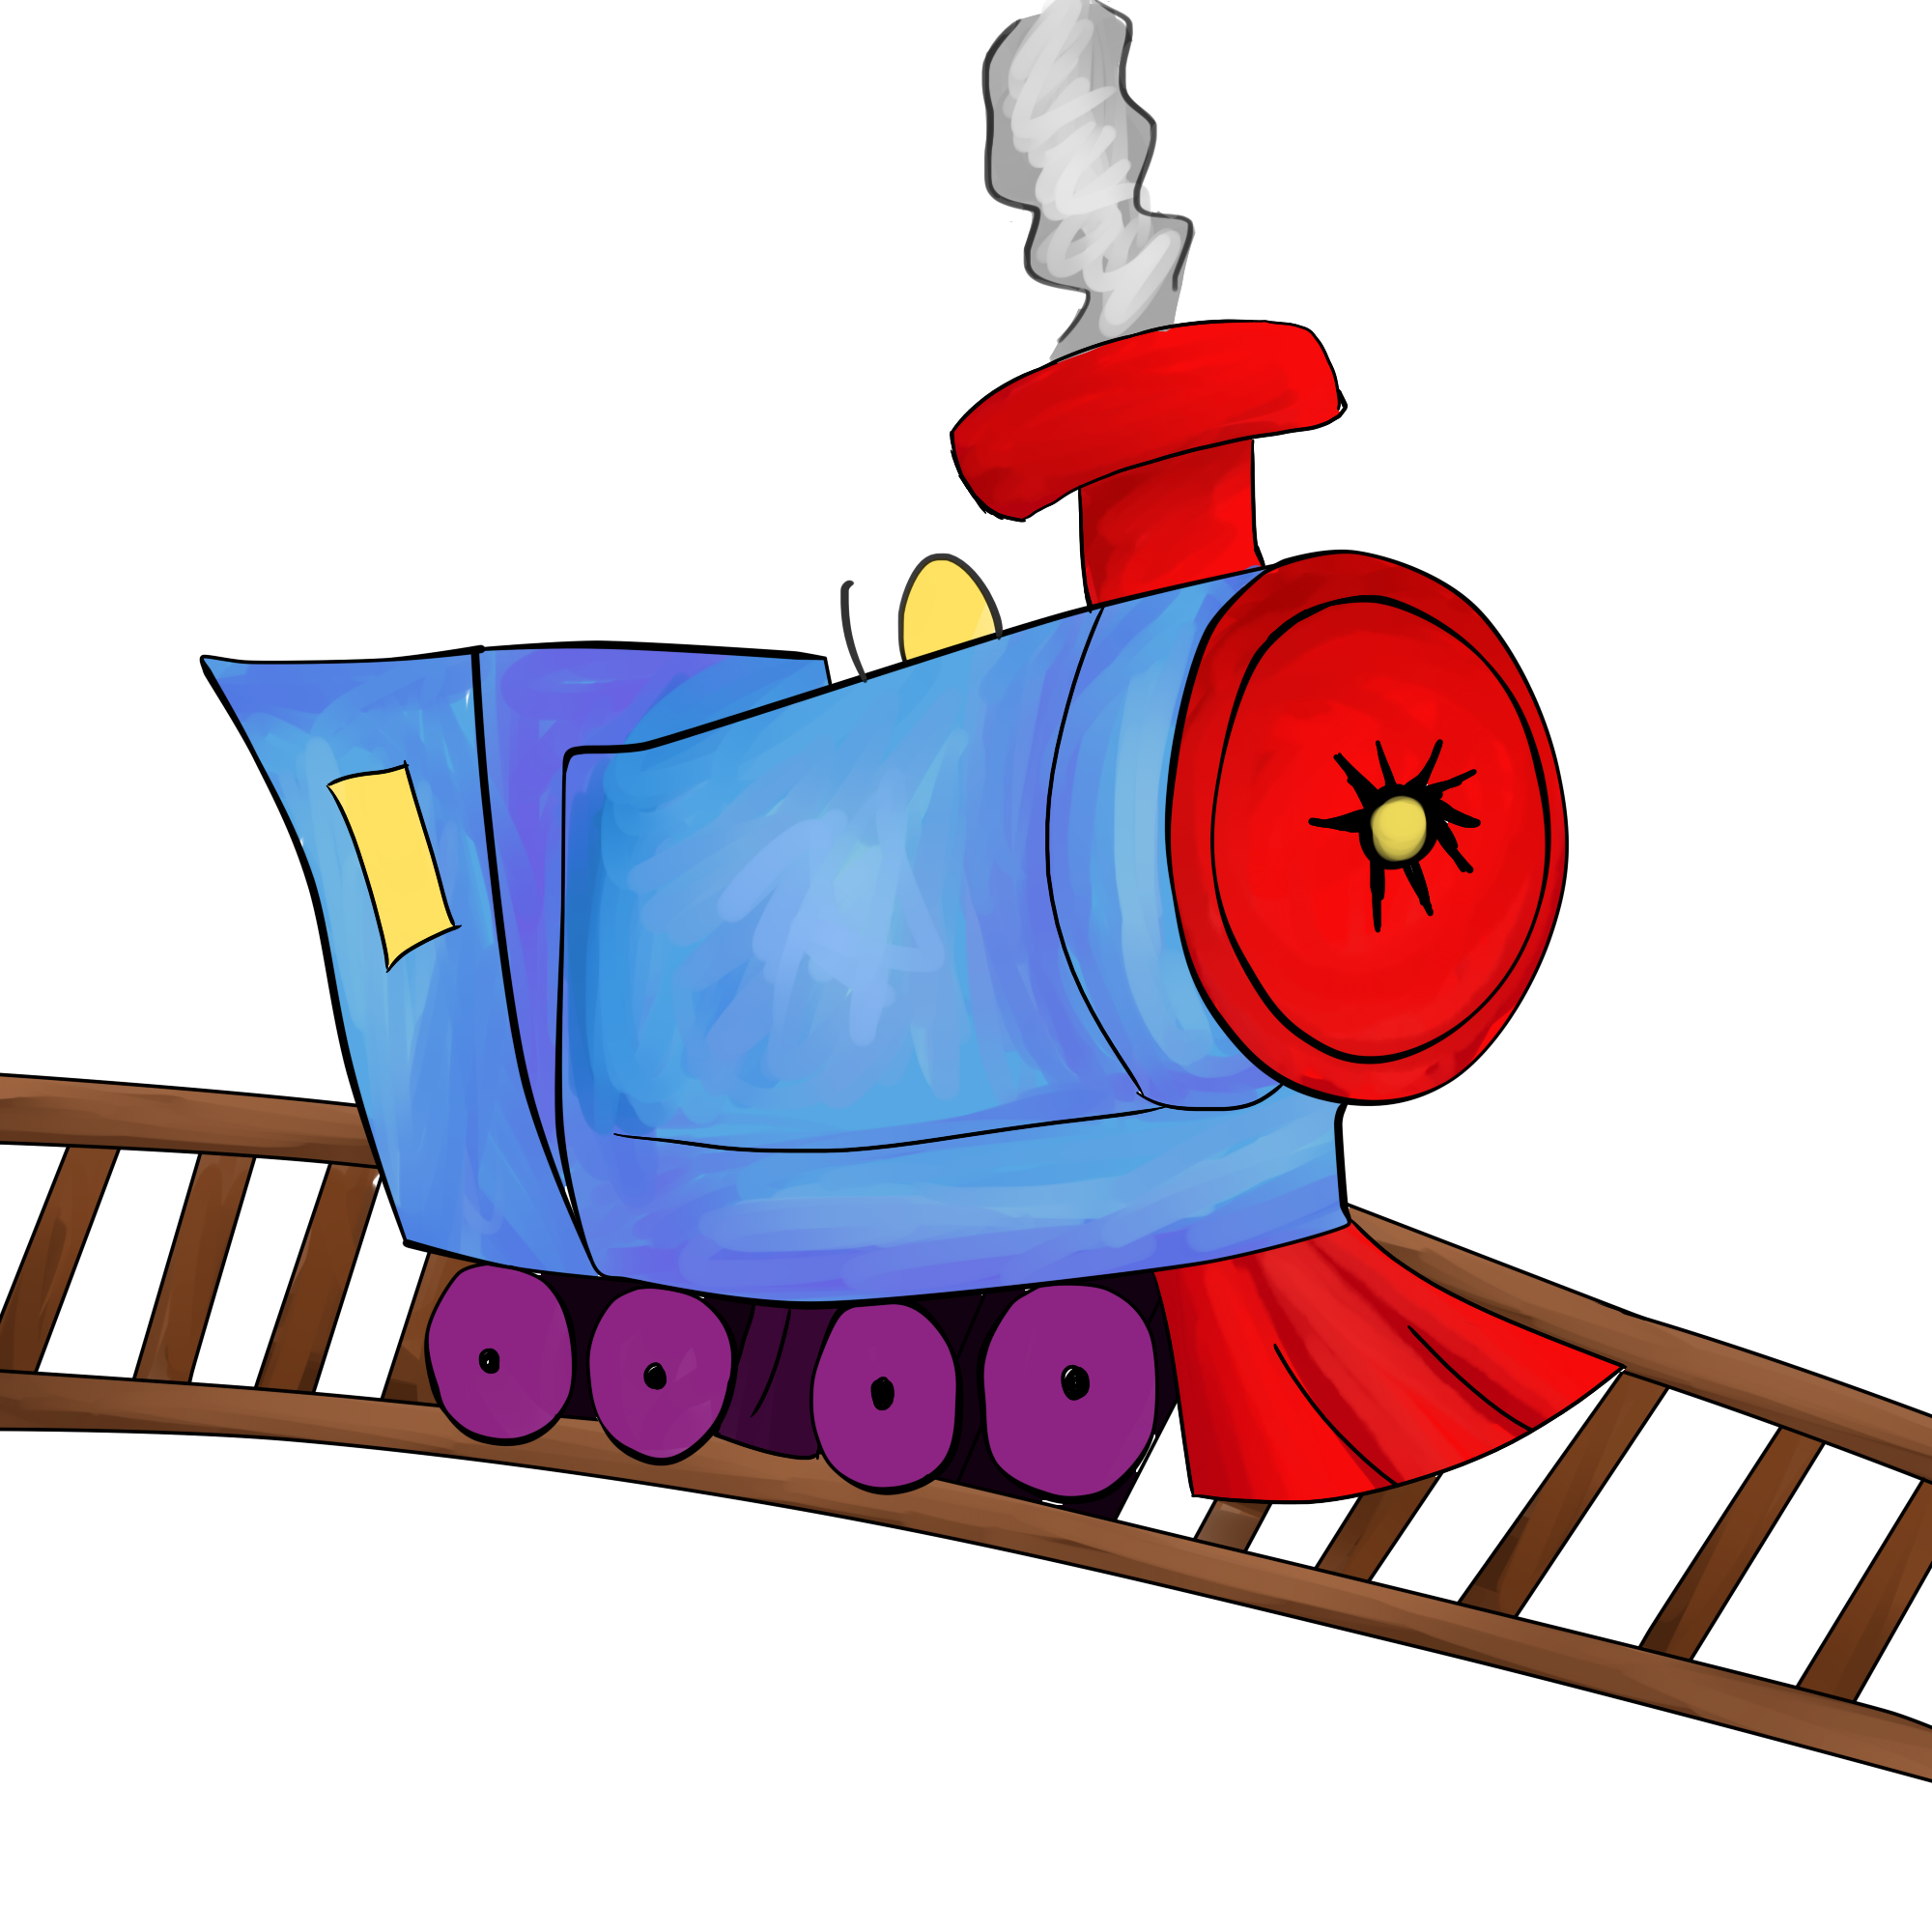 Image of choo train clipart 1 toy clip art.